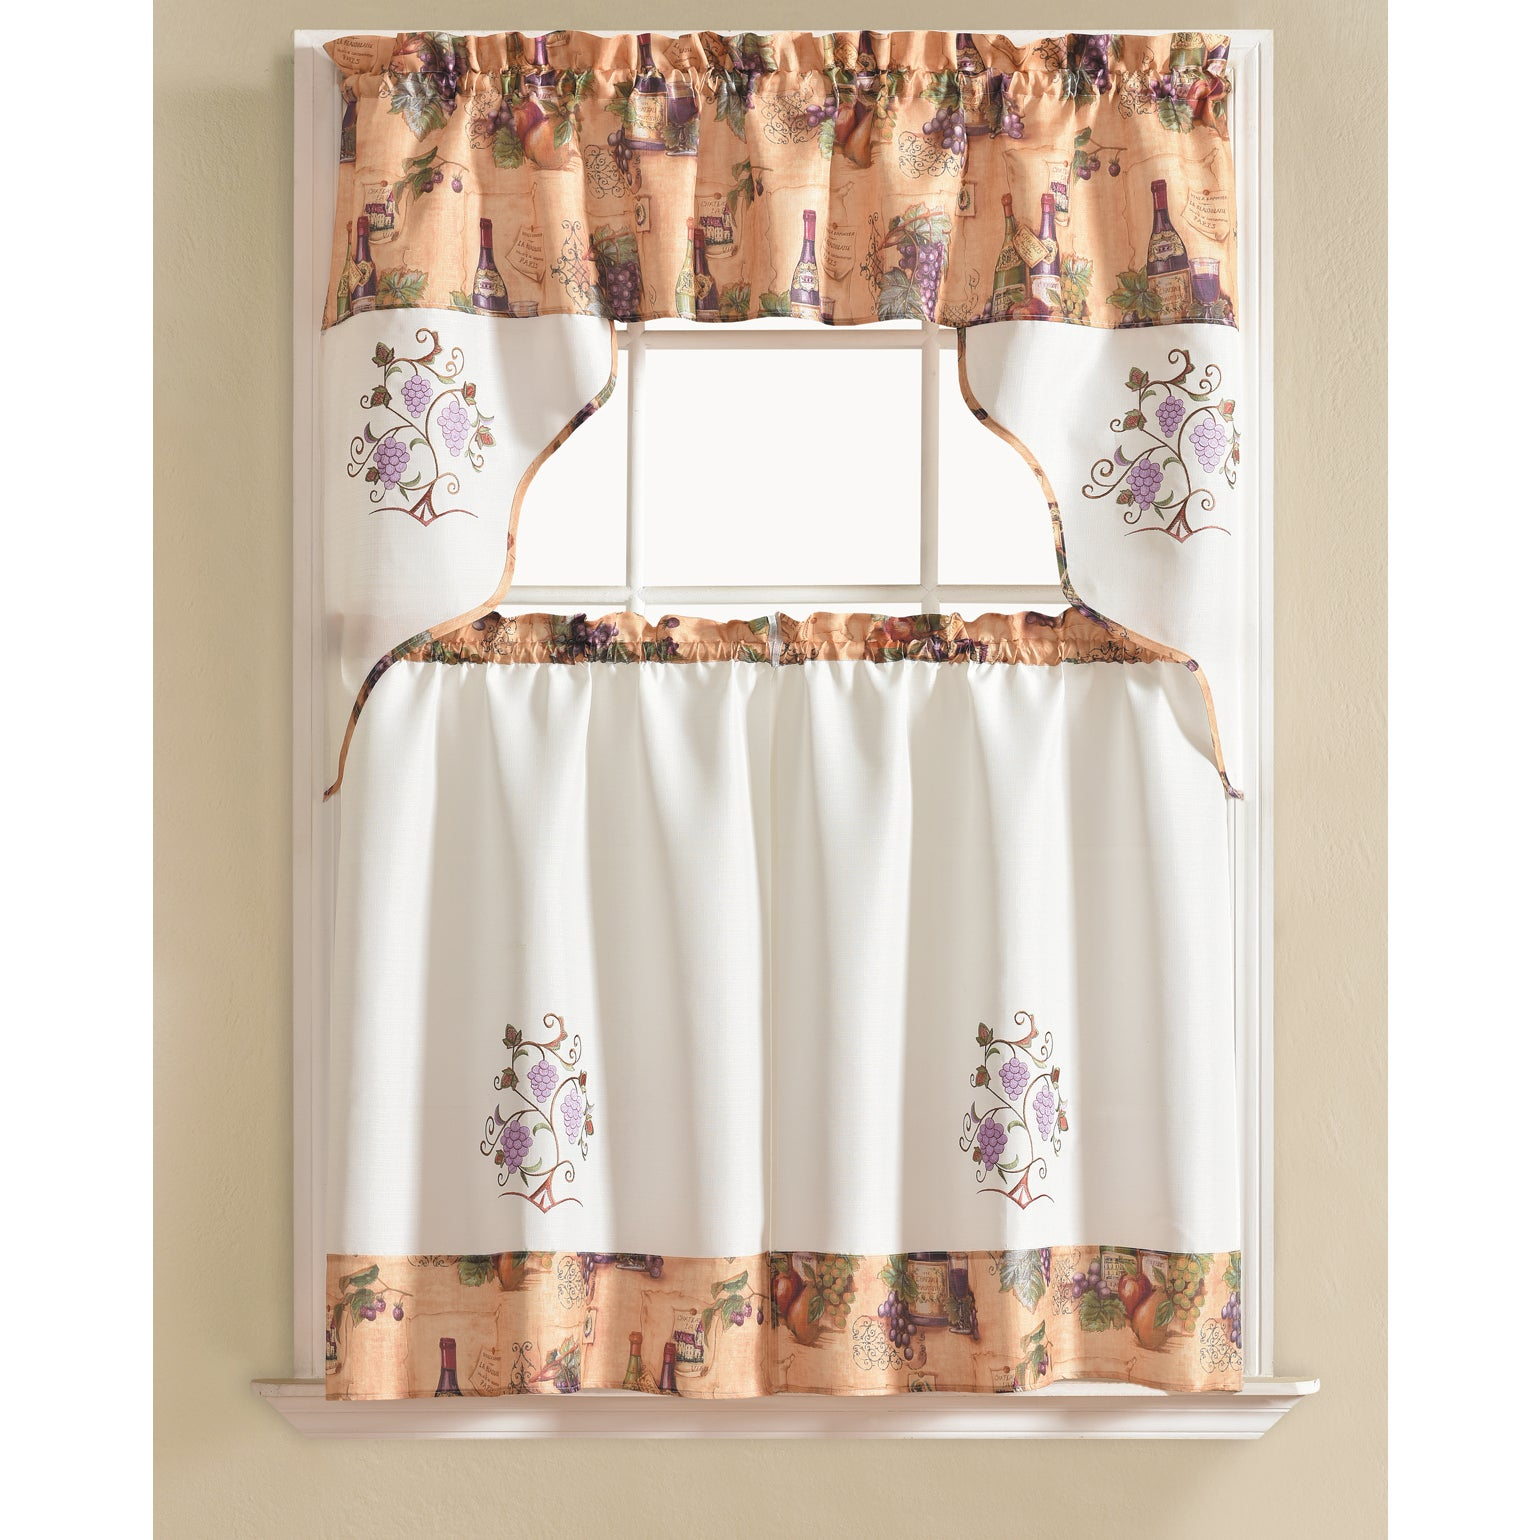 Rt Designers Collection Urban Embroidered Tier And Valance Kitchen Curtain Tier Set Inside Embroidered Ladybugs Window Curtain Pieces (View 7 of 20)